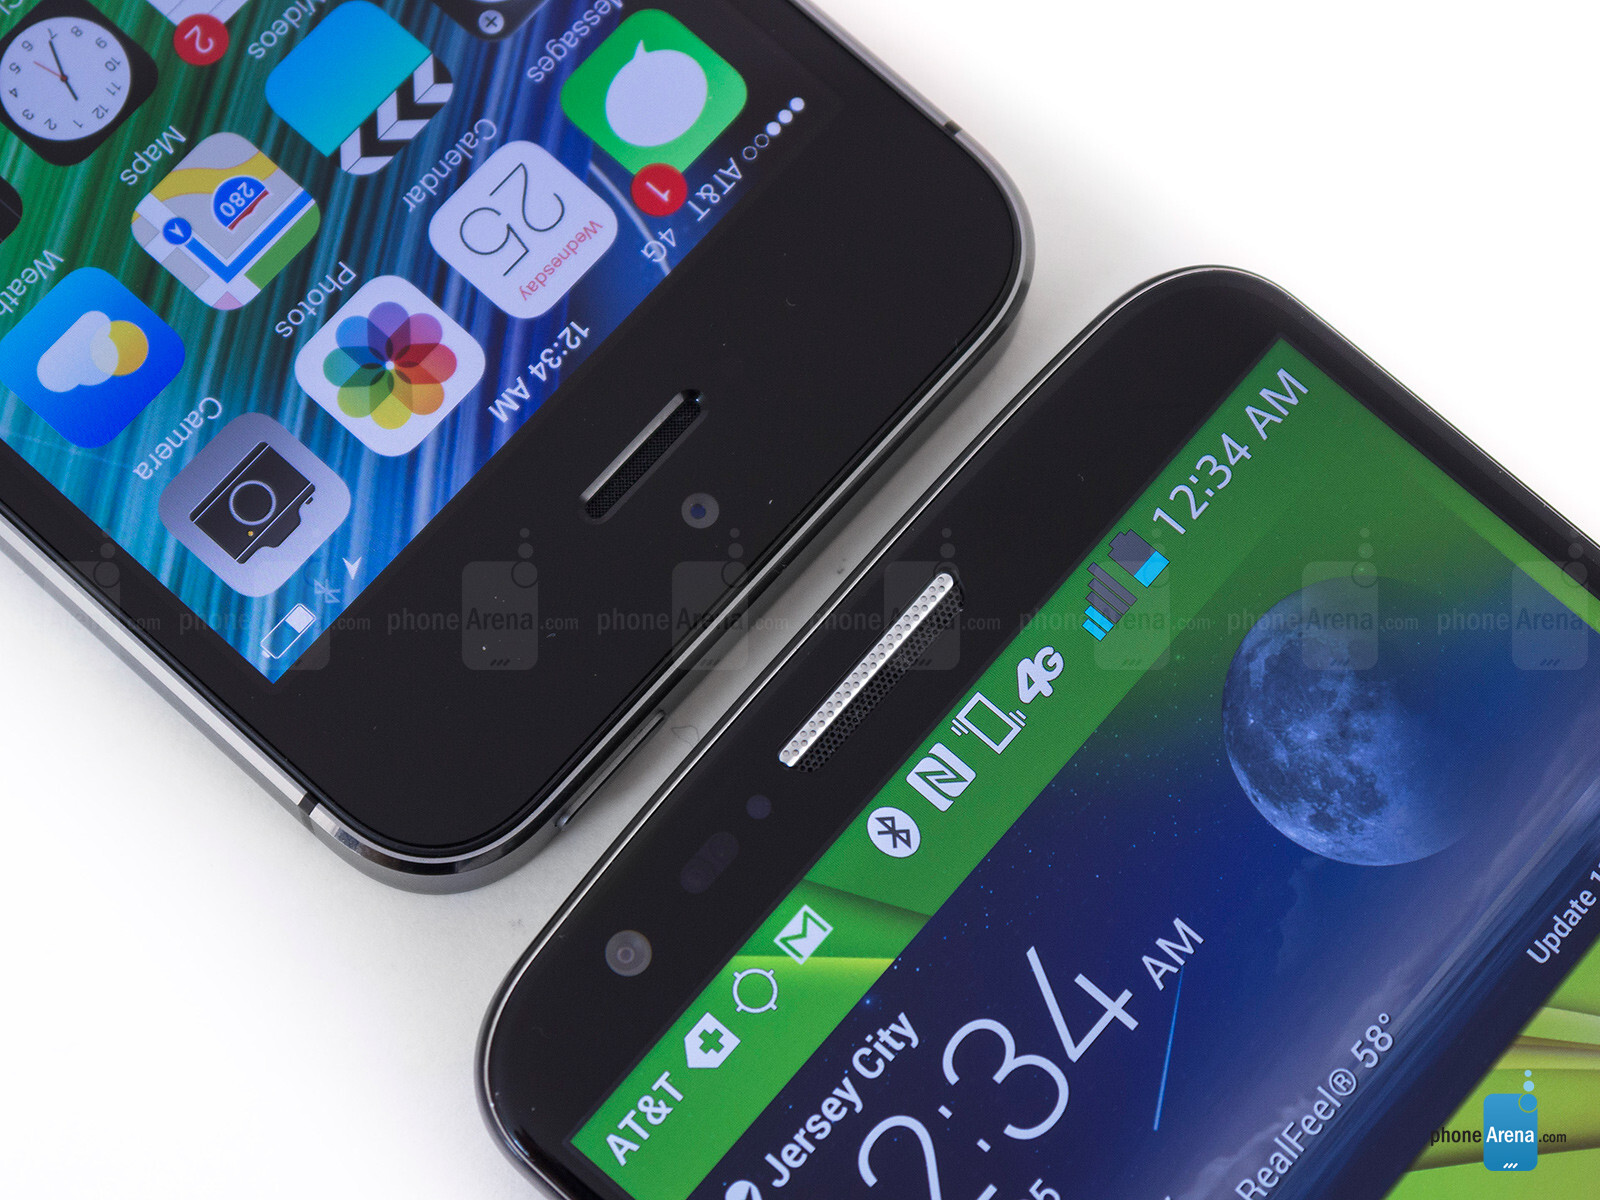 Apple iPhone 5s vs LG G2 - Call Quality, Battery and ...